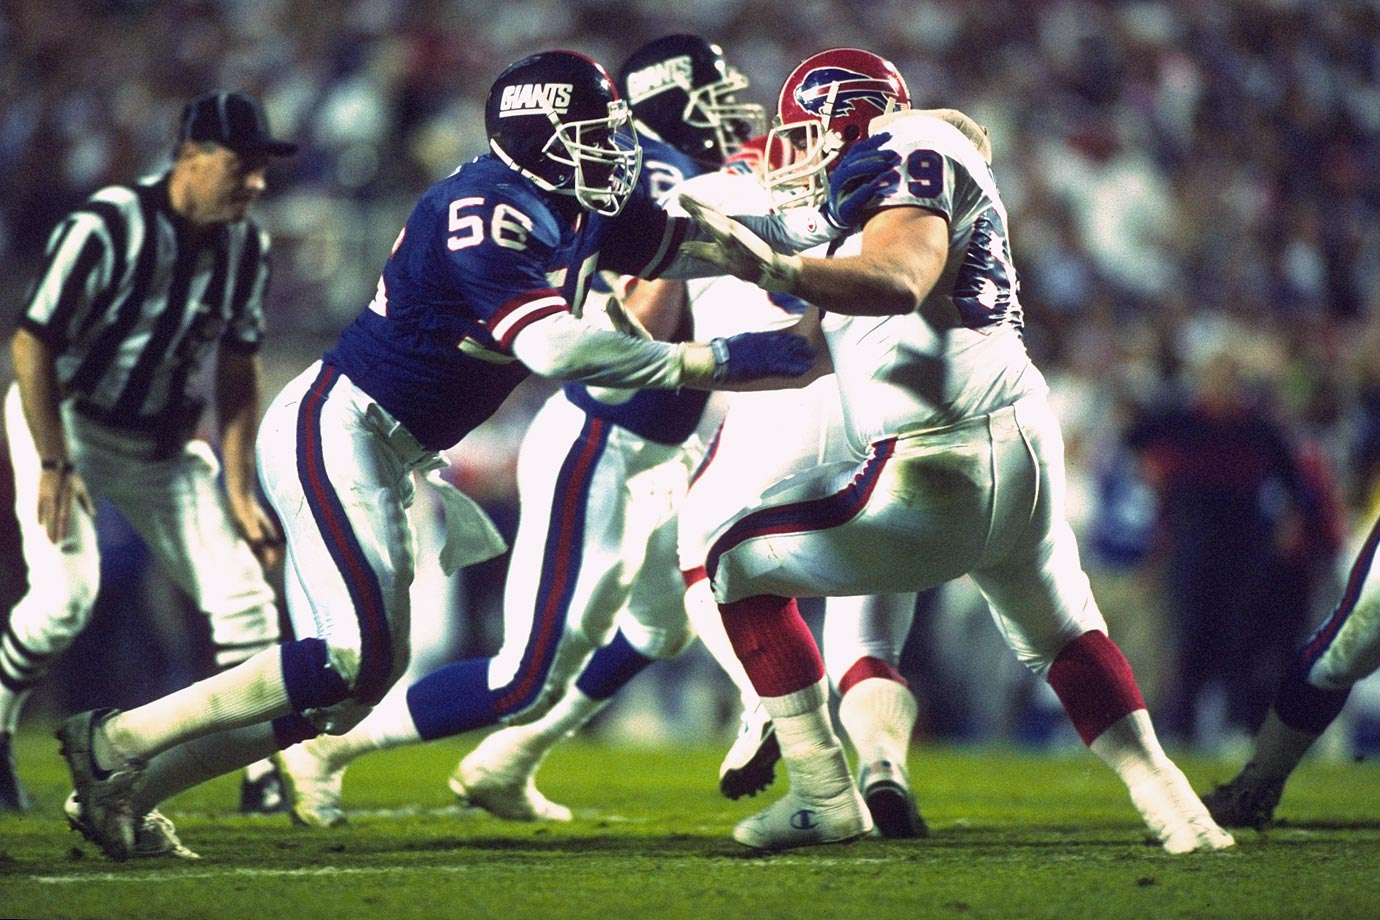 Jan. 27, 1991 (Super Bowl XXV)